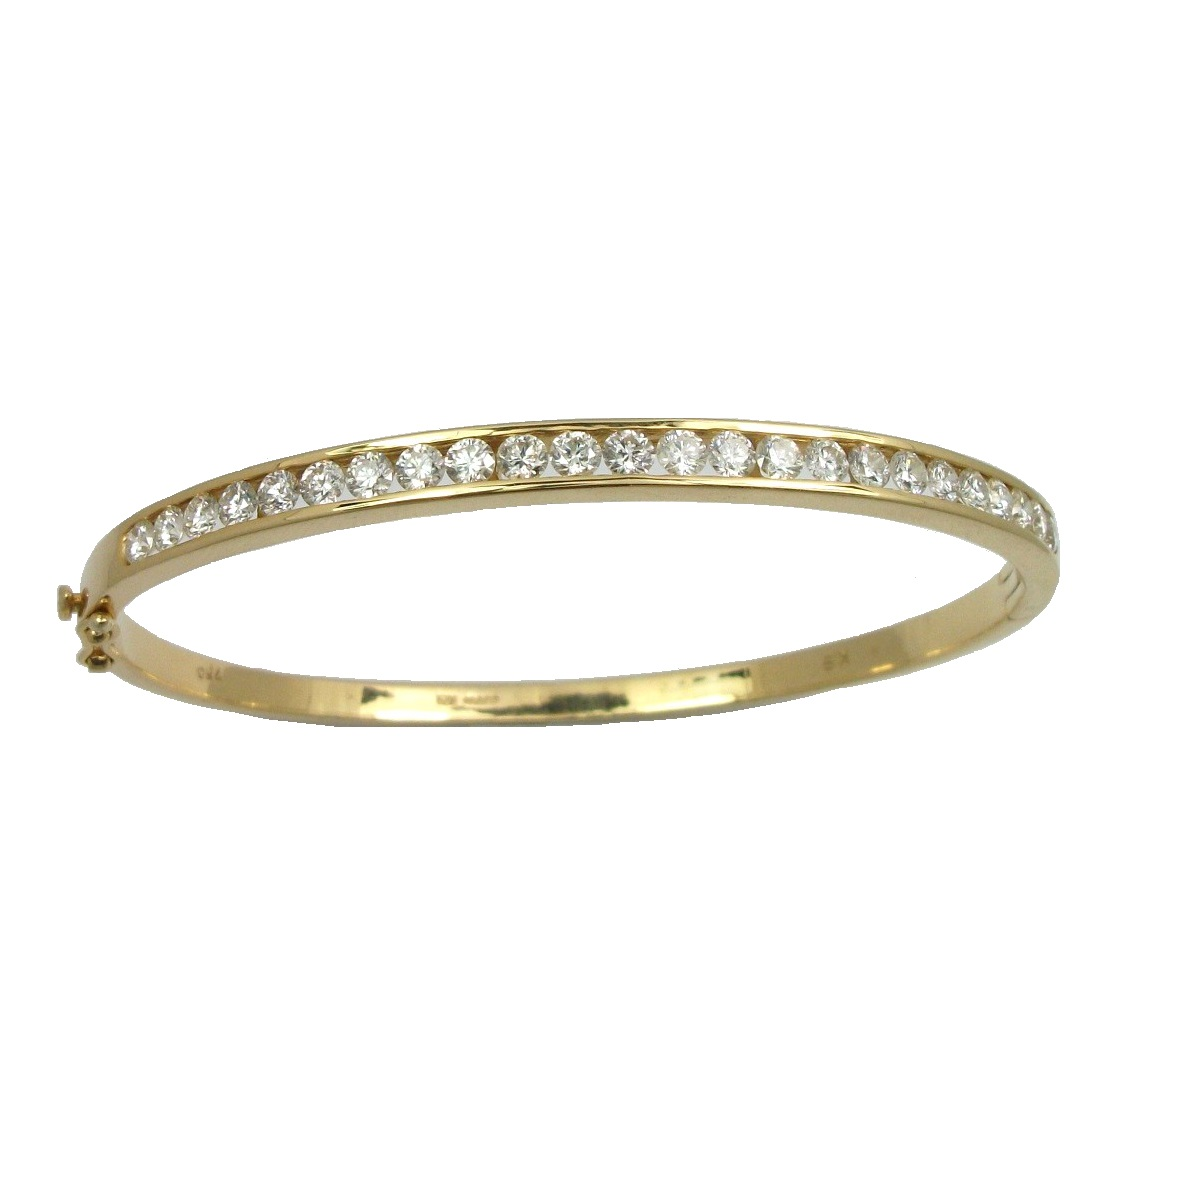 Gold And Diamond Bracelet Uk